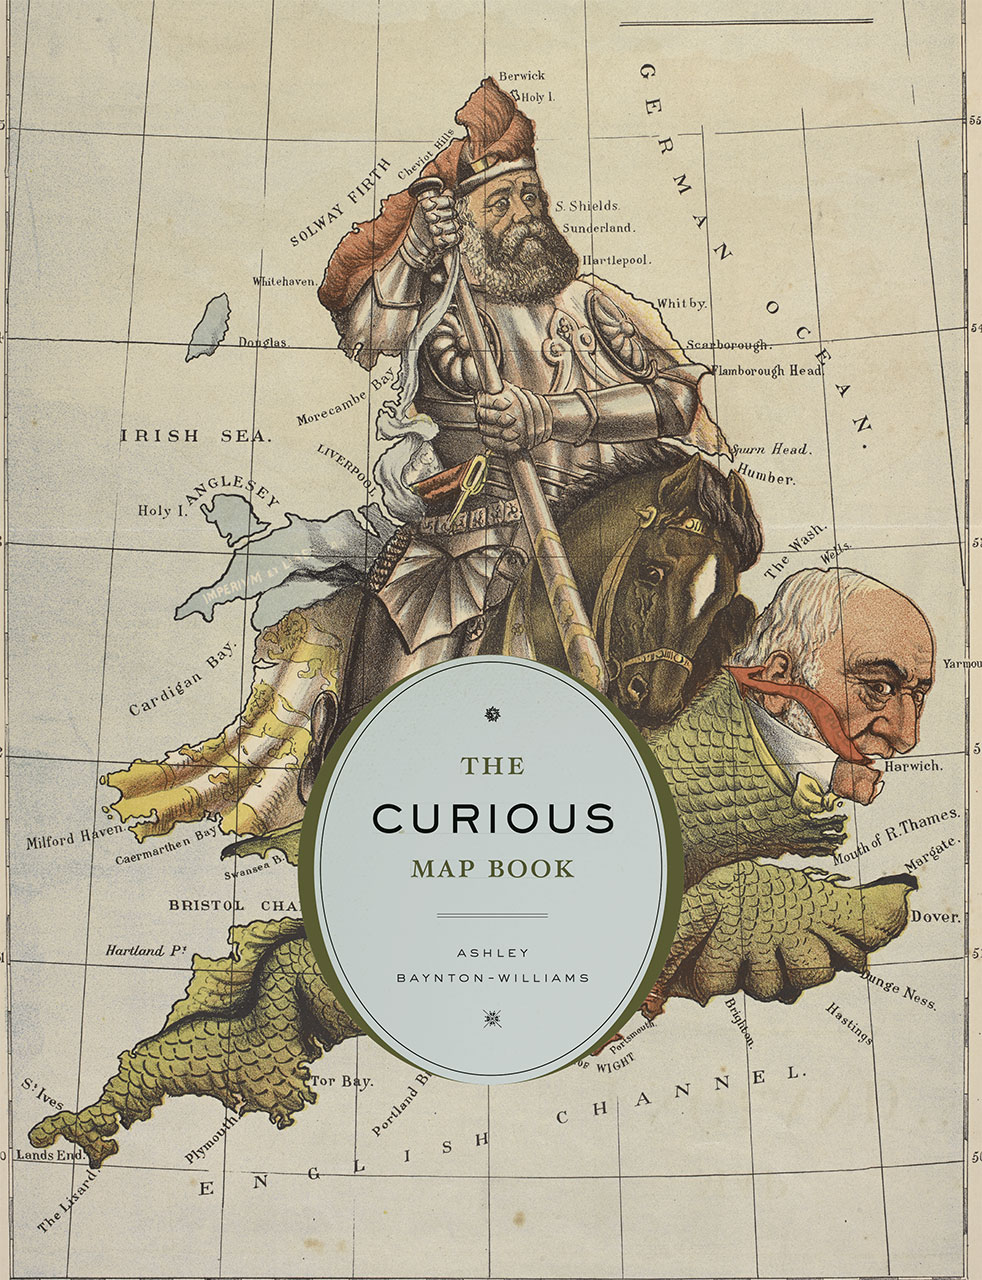 View Of Review Of The Curious Map Book Cartographic Perspectives